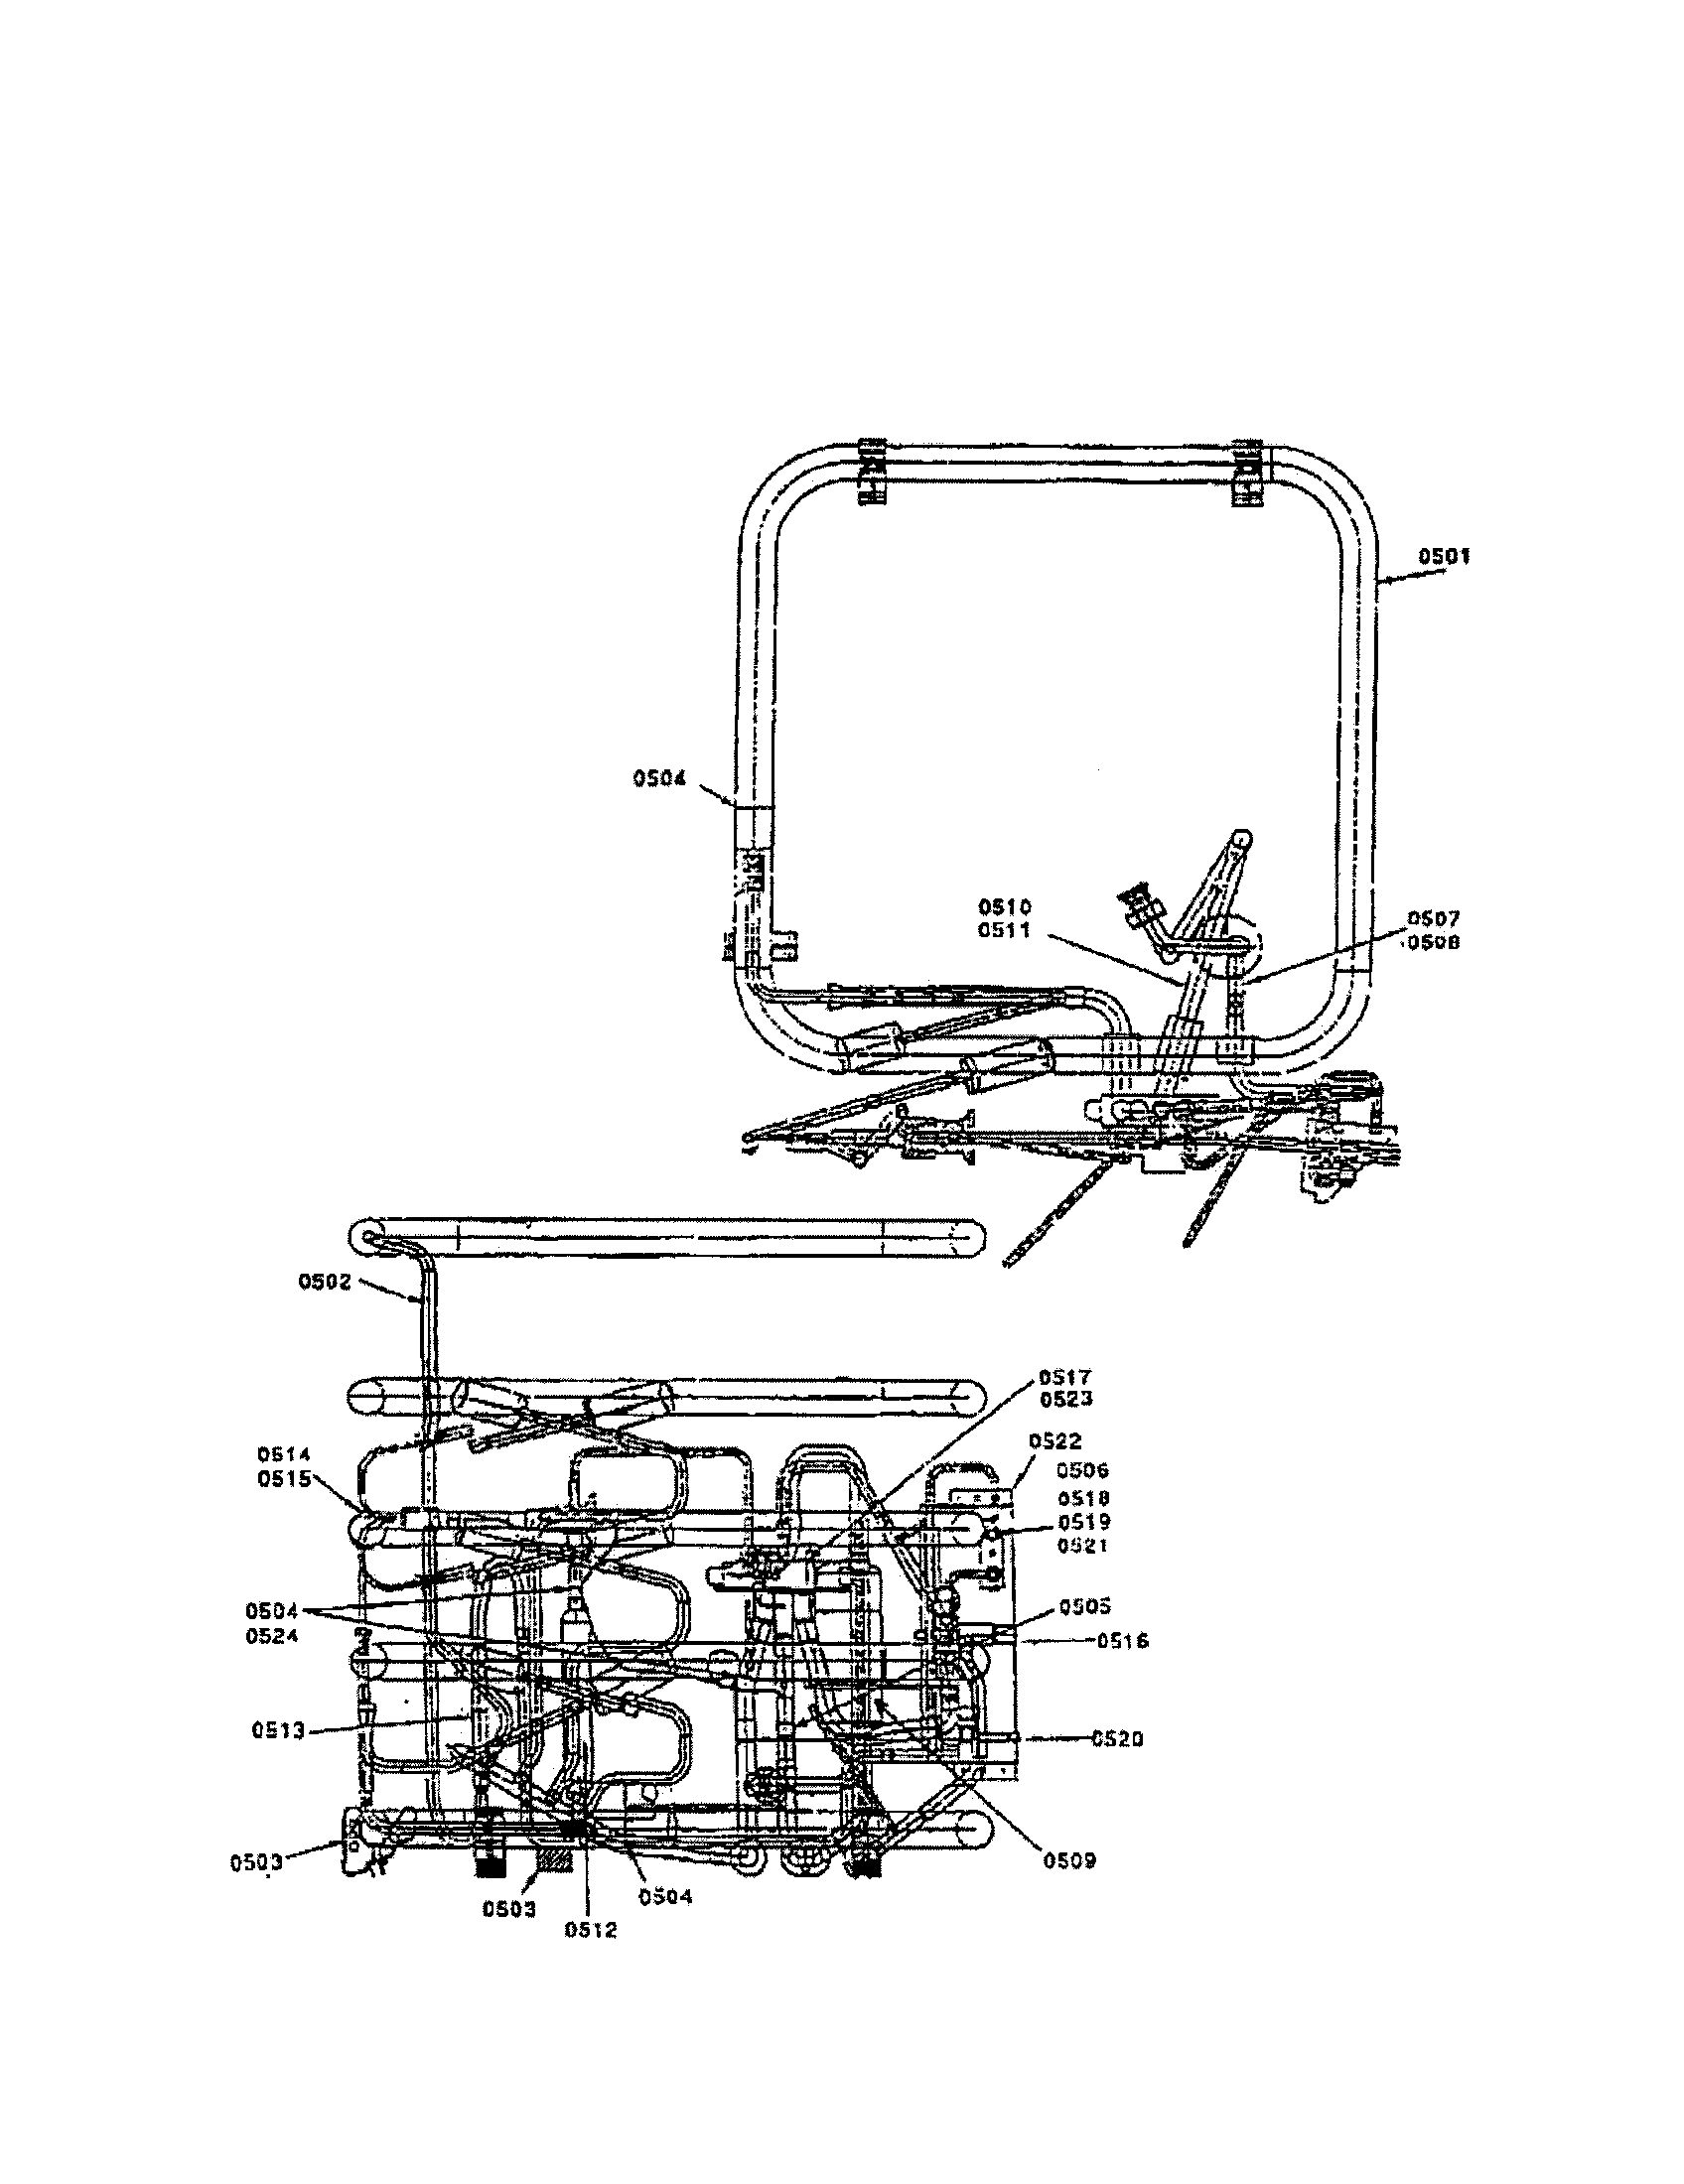 Trane Parts Diagram Daily Update Wiring Xv90 Xr401 26 Images Furnace Breakdown